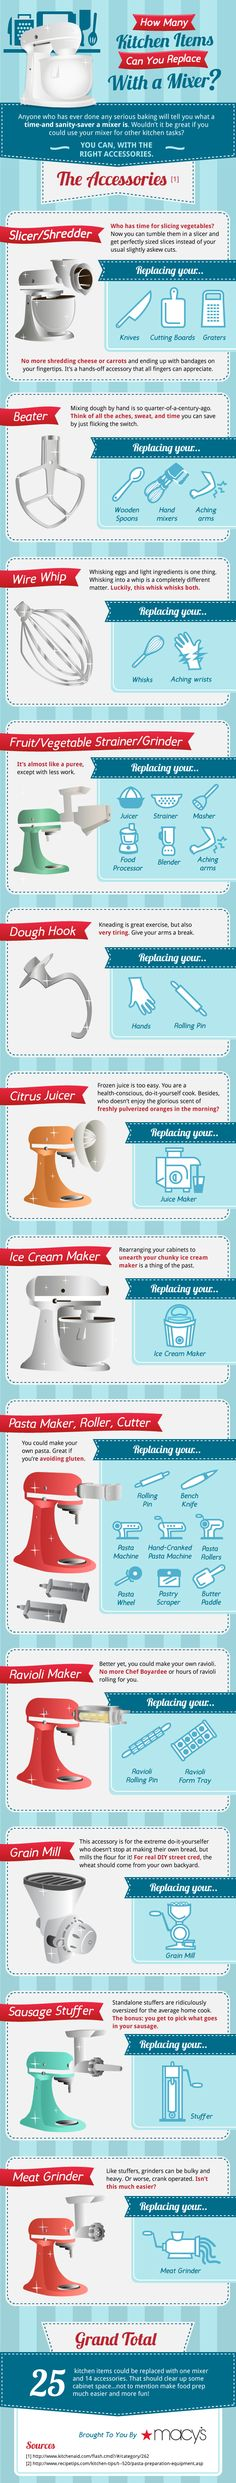 How many kitchen items can you replace with a mixer | infographic